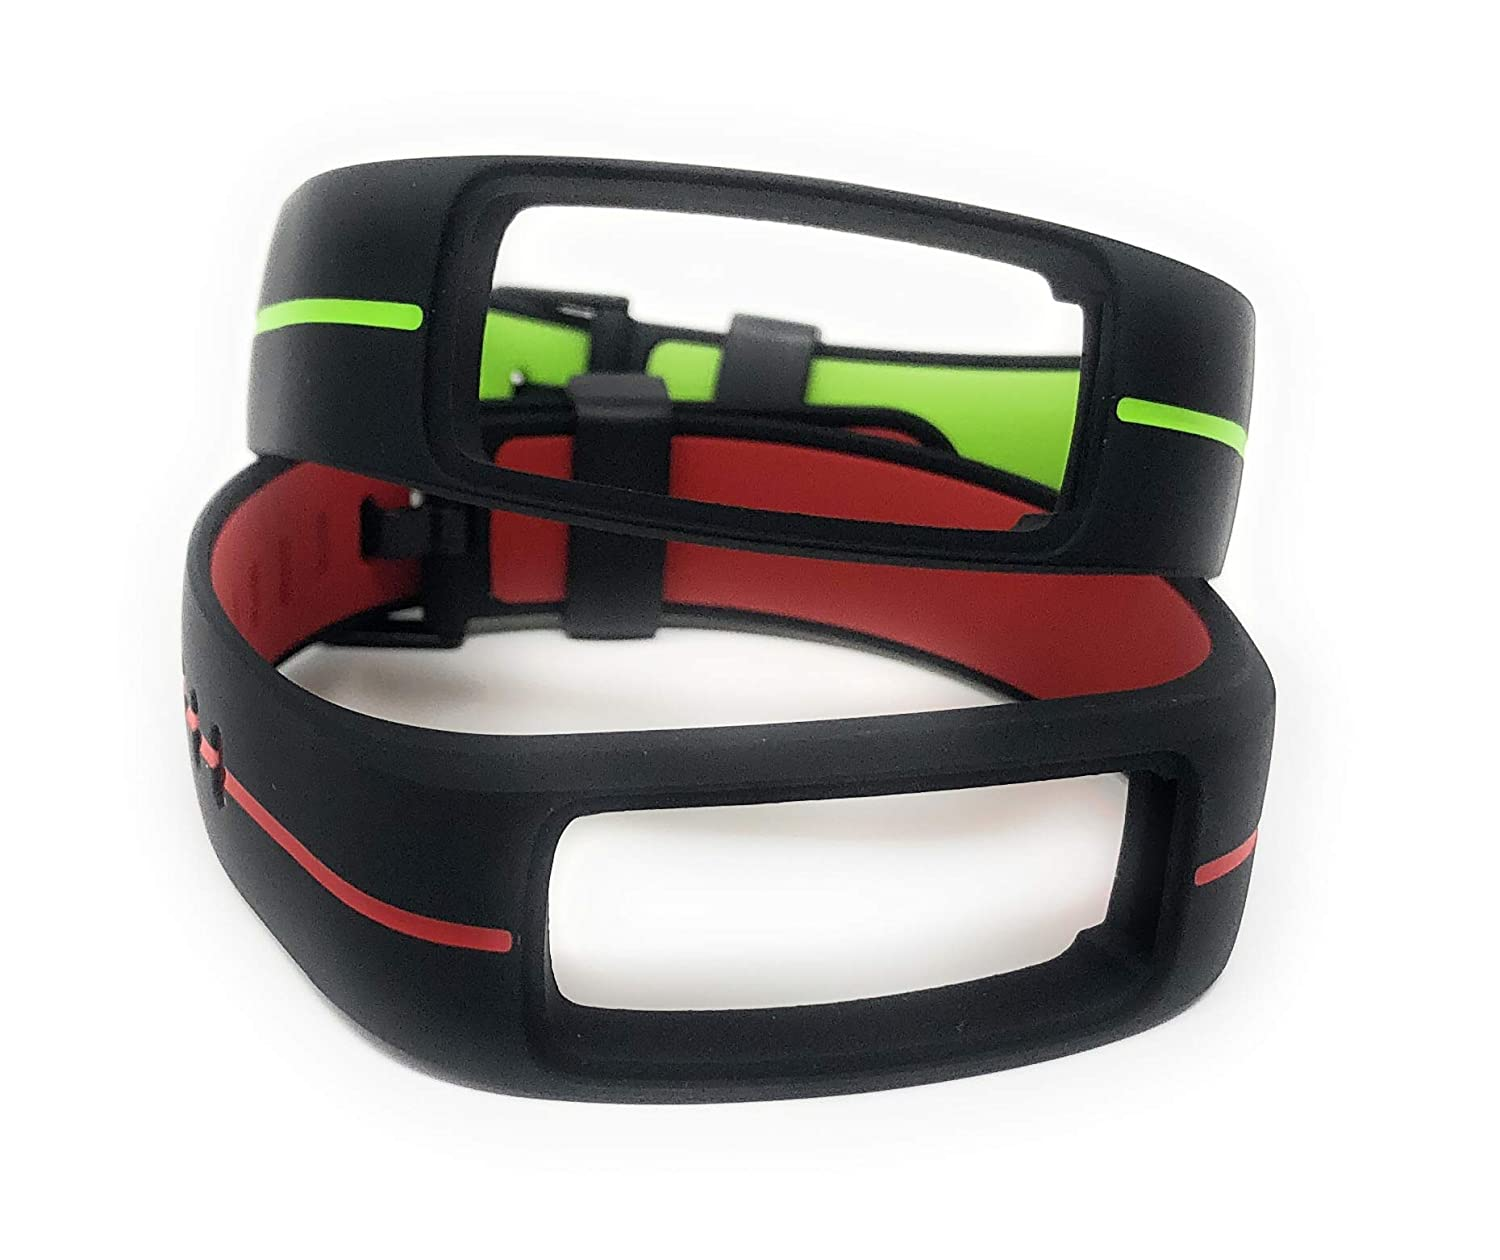 MICROTELLA Fitness RX Replacement Band